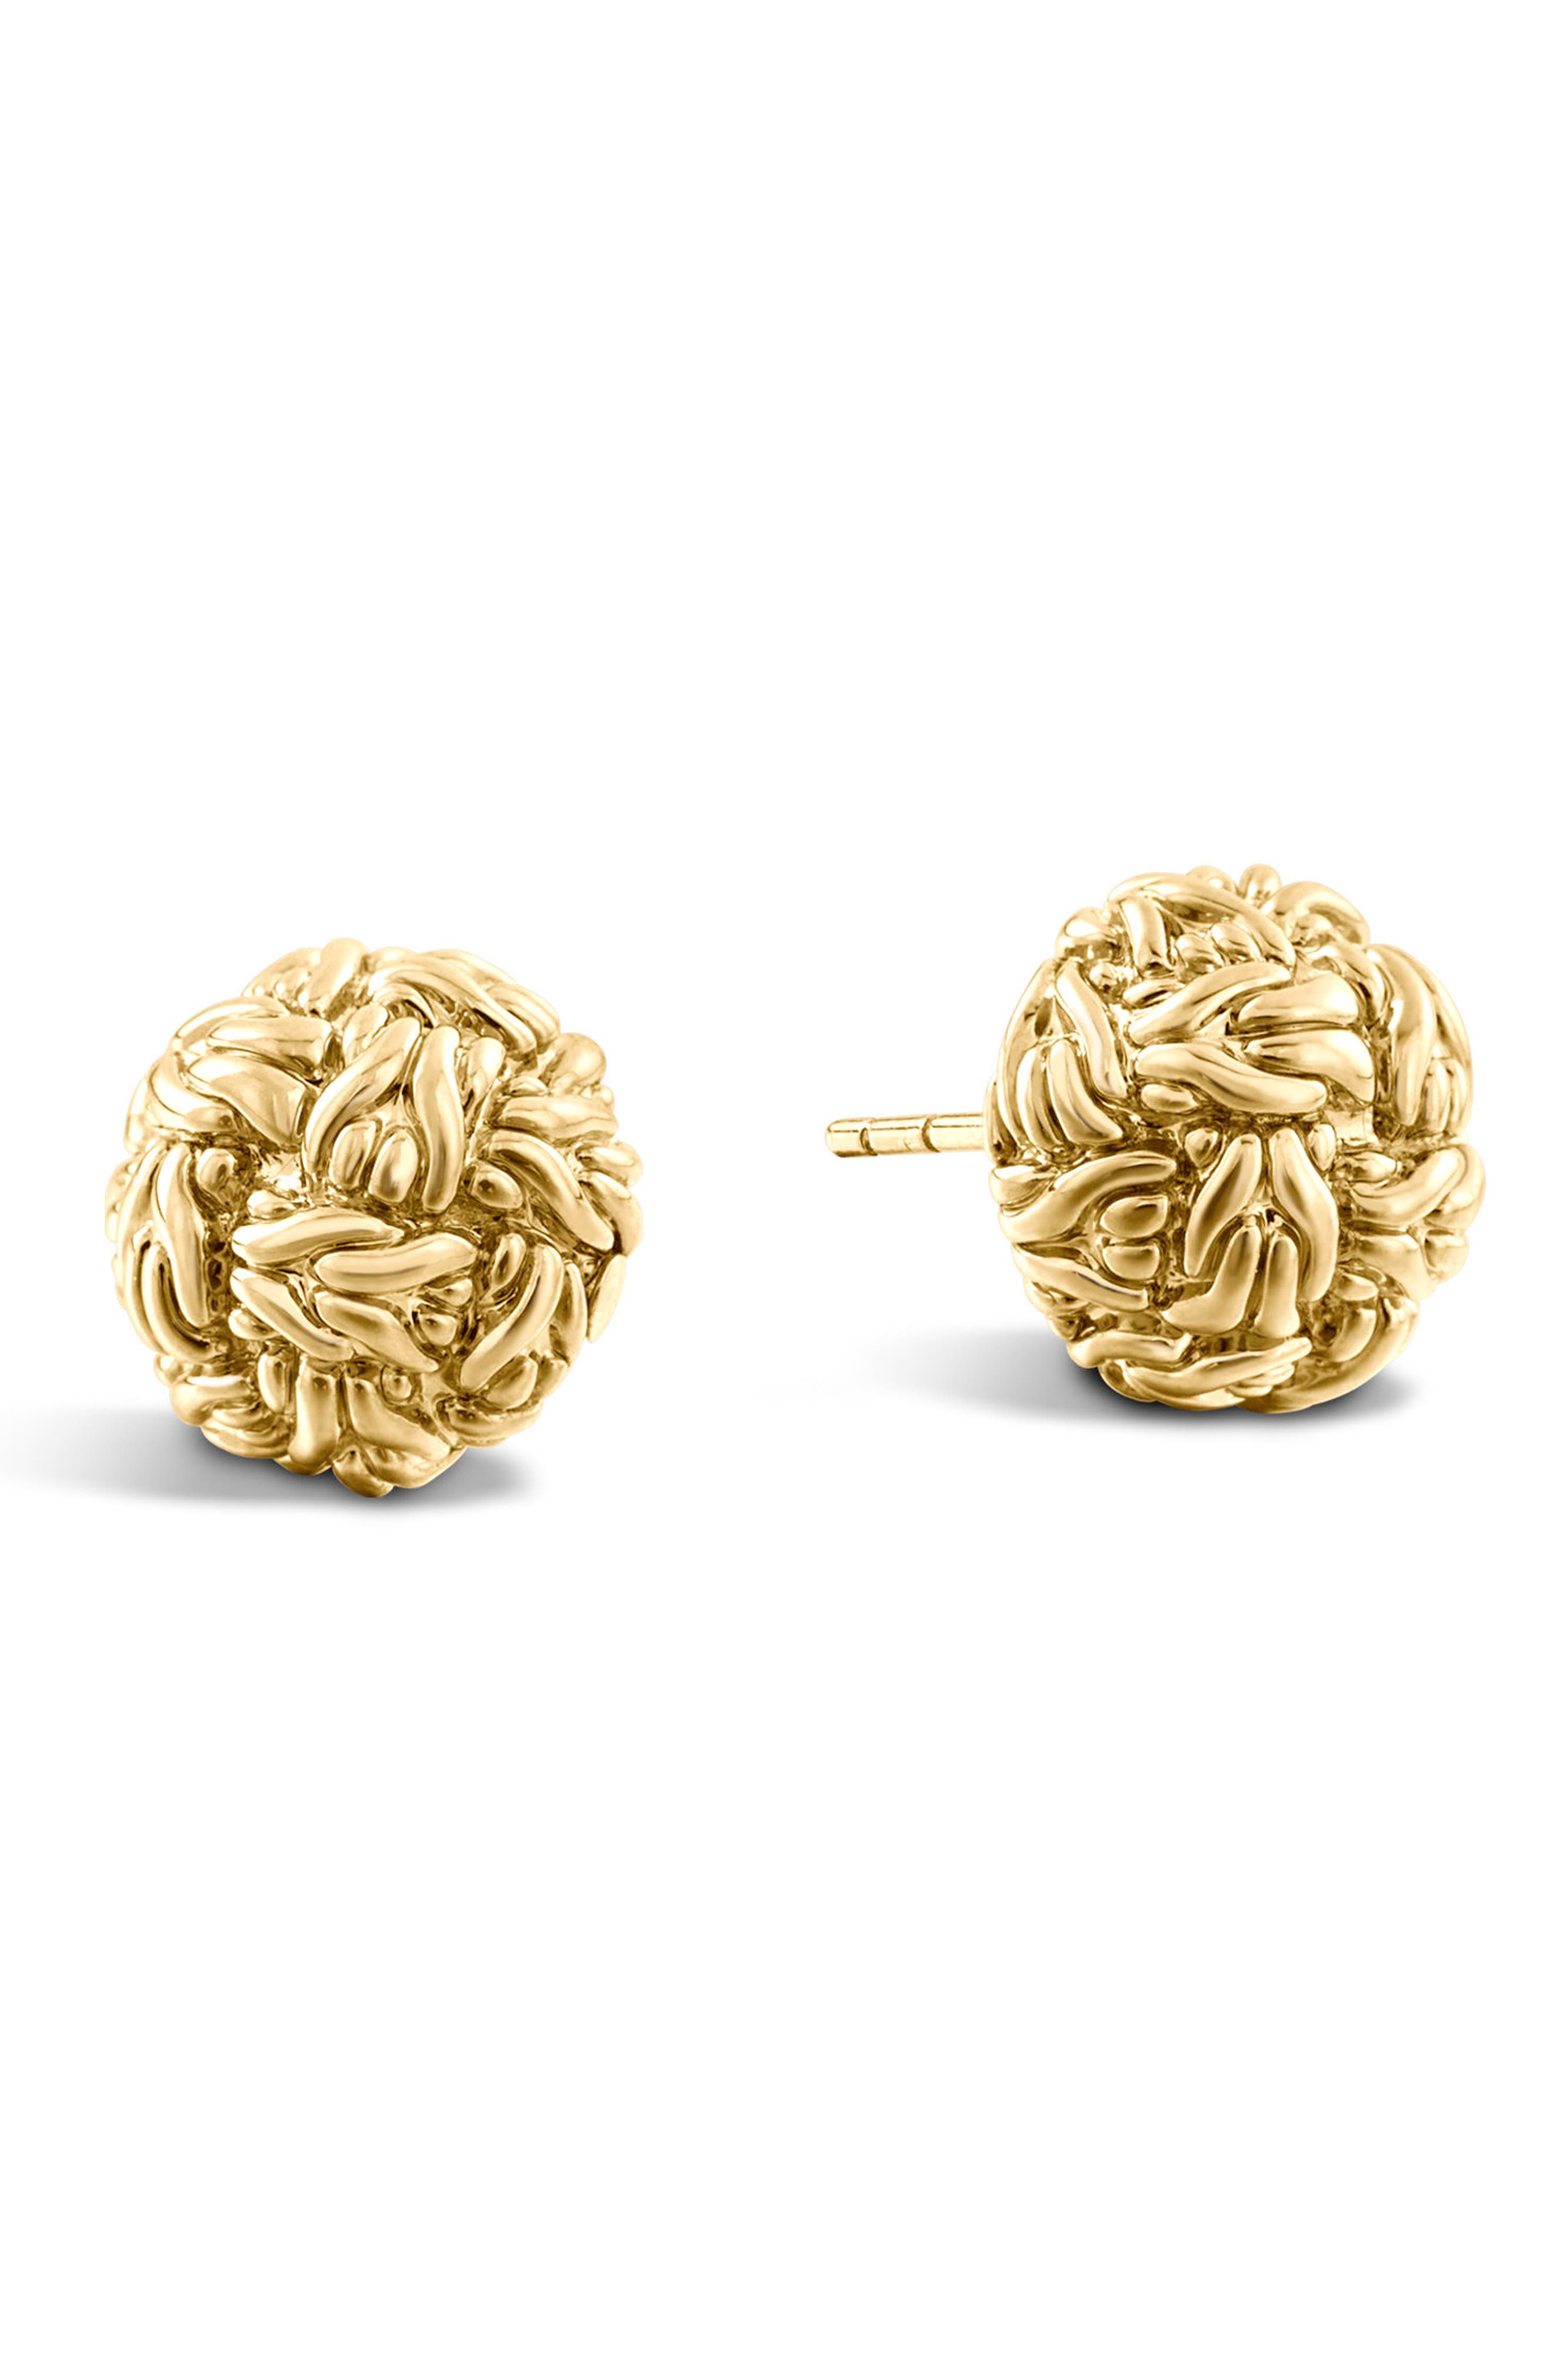 Classic Chain Gold Stud Earrings,                             Main thumbnail 1, color,                             710